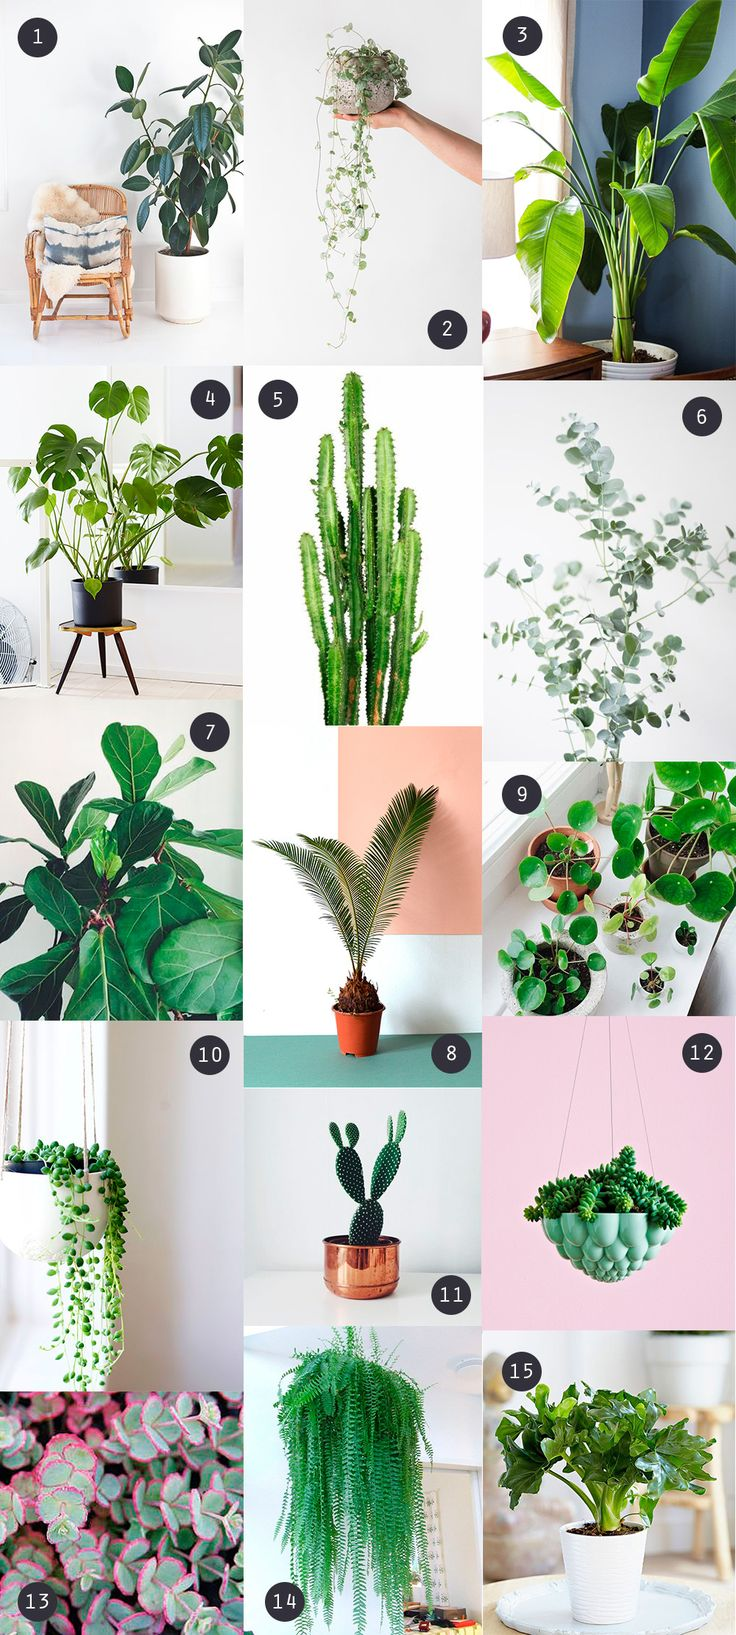 Les 25 meilleures id es de la cat gorie plante d 39 int rieur for Plante interieur photo